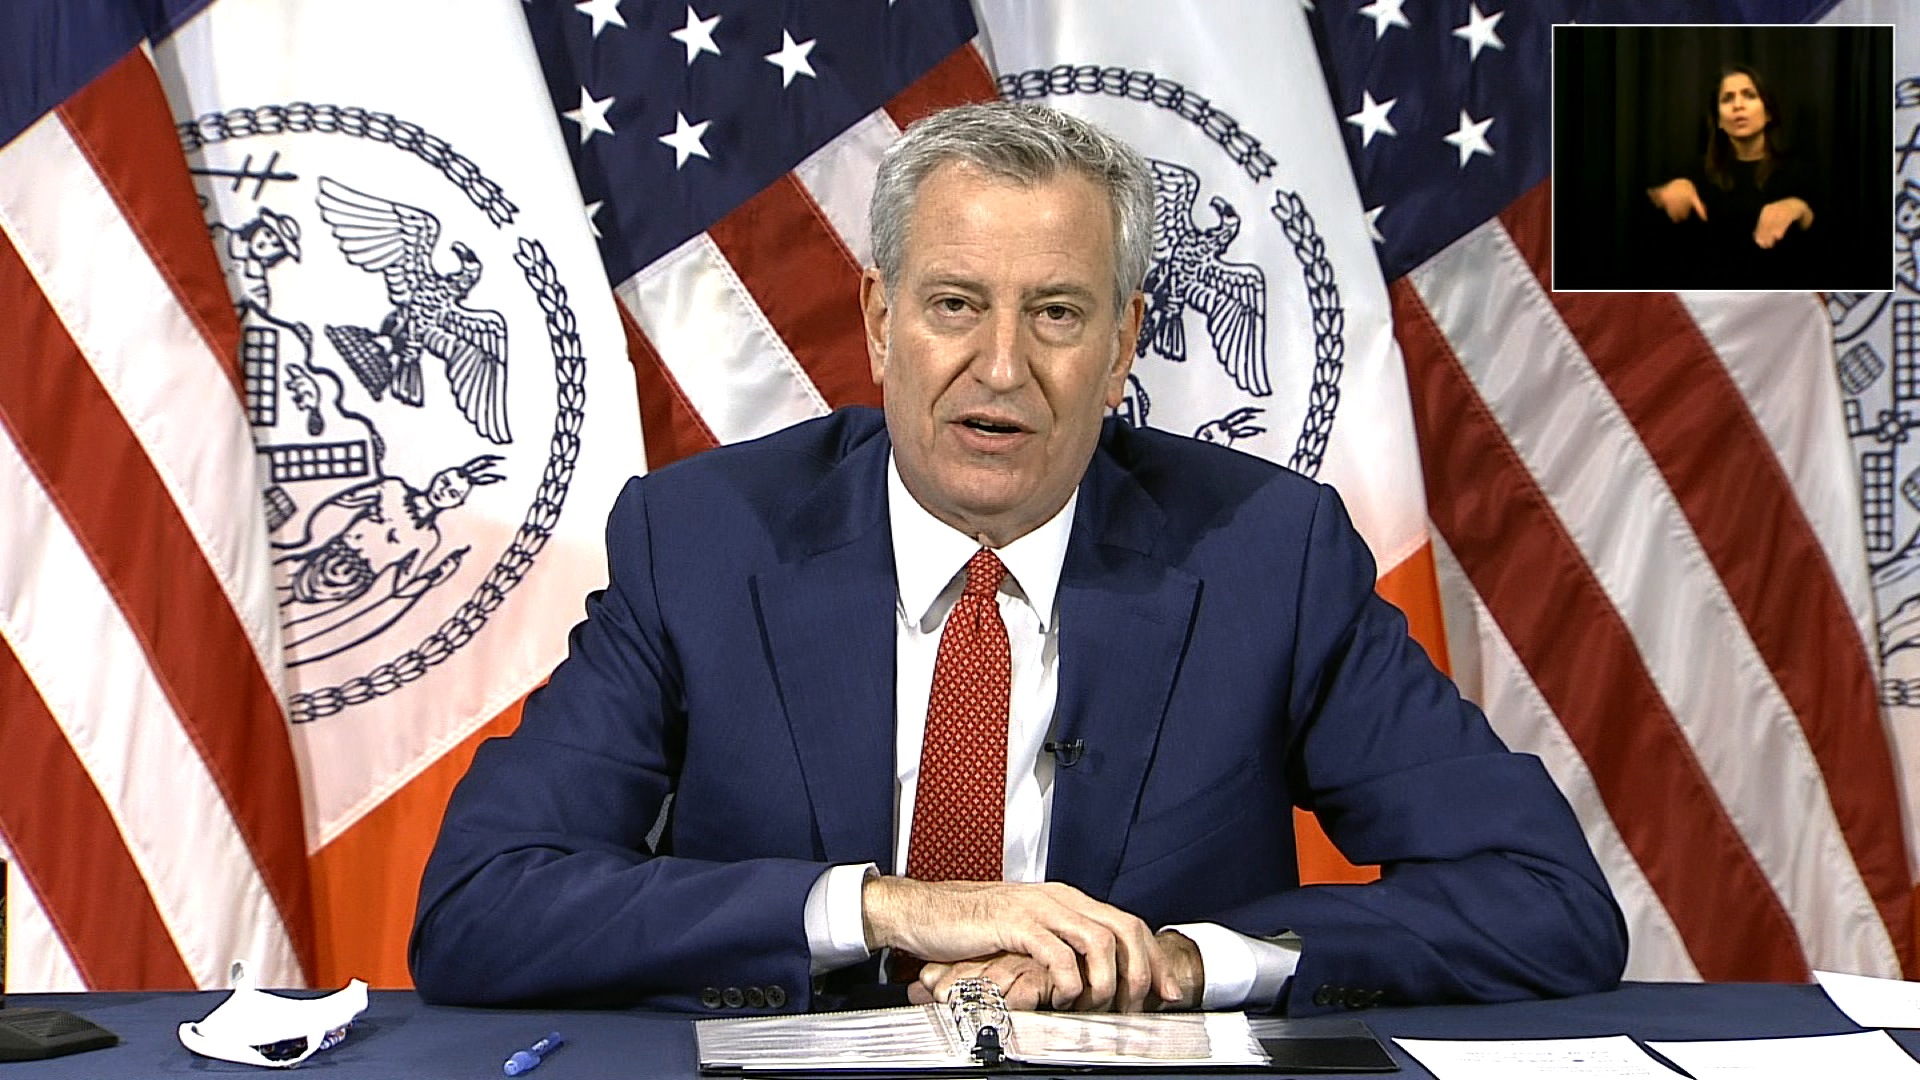 New York City Mayor Bill de Blasio speaks during a press conference in New York City on December 8.